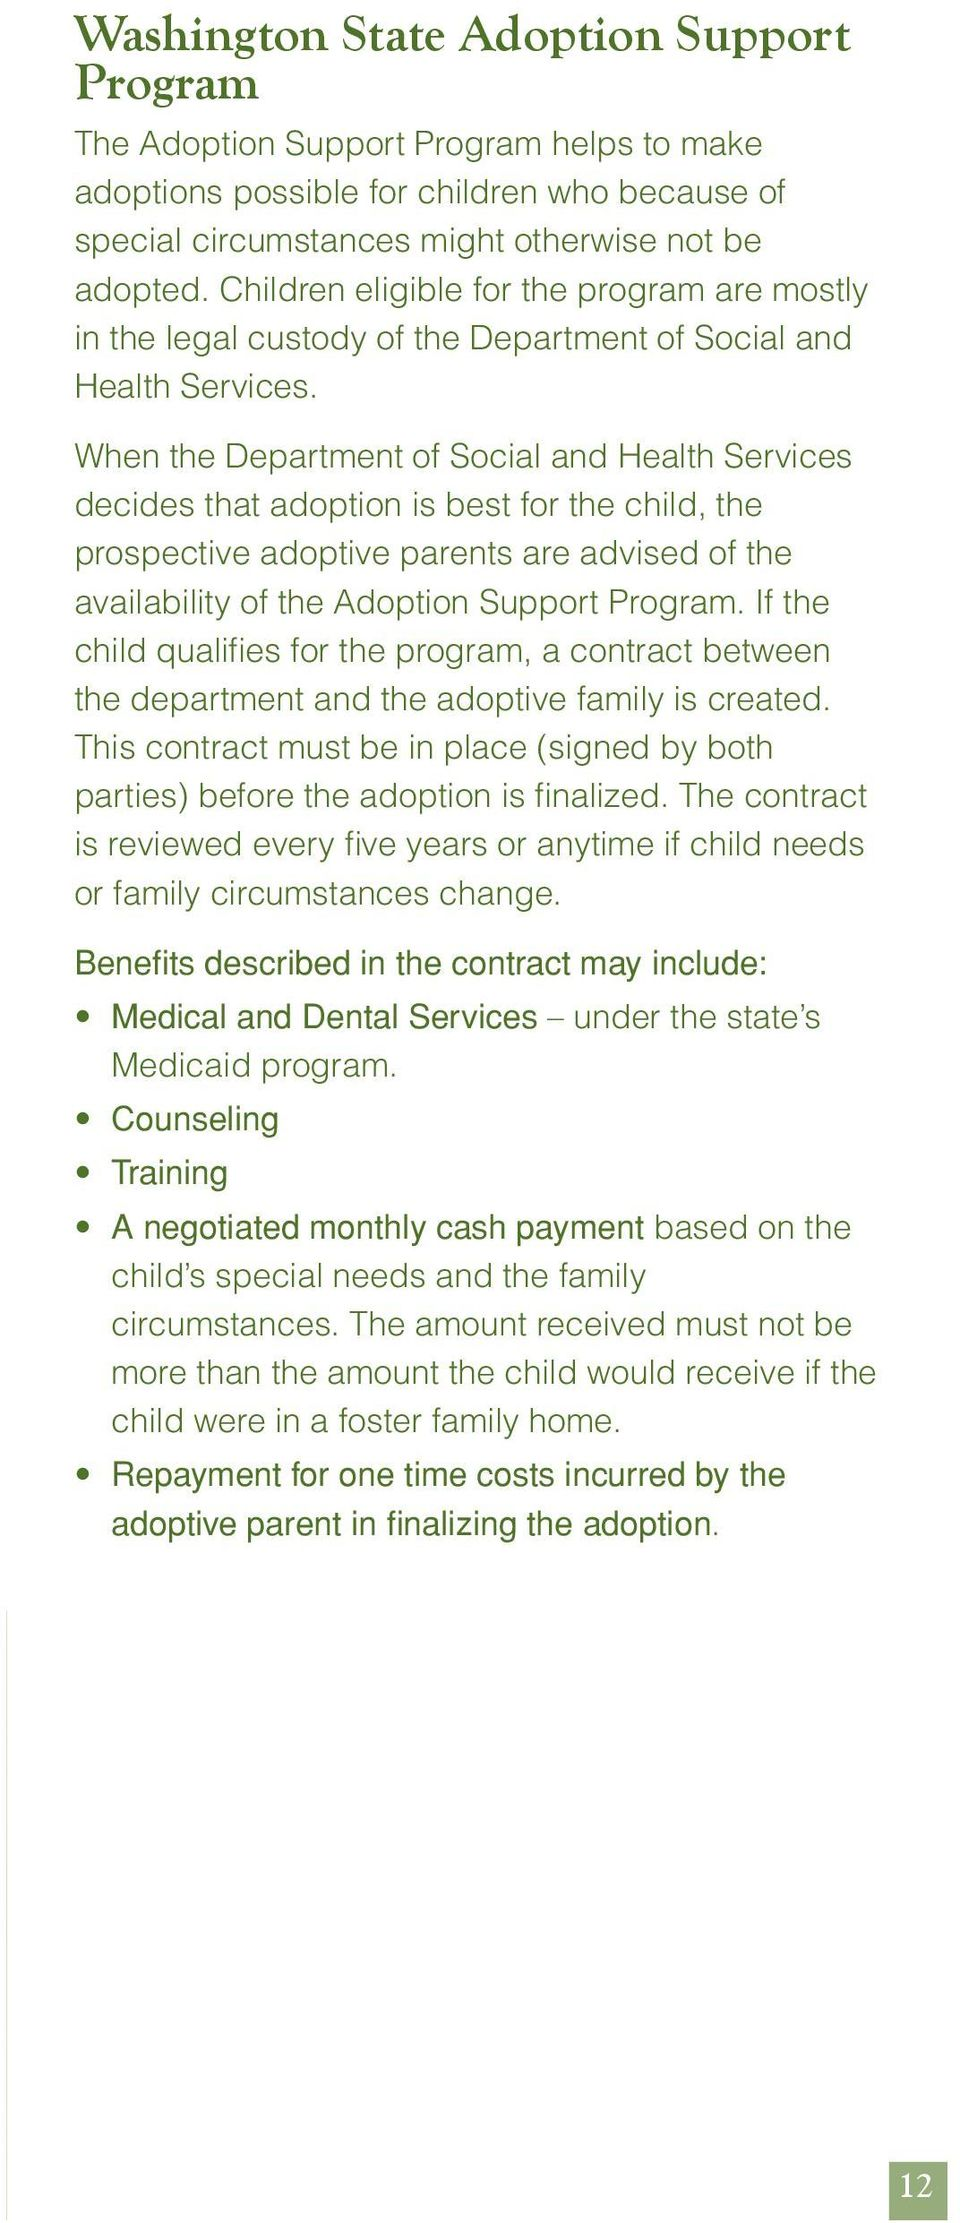 When the Department of Social and Health Services decides that adoption is best for the child, the prospective adoptive parents are advised of the availability of the Adoption Support Program.